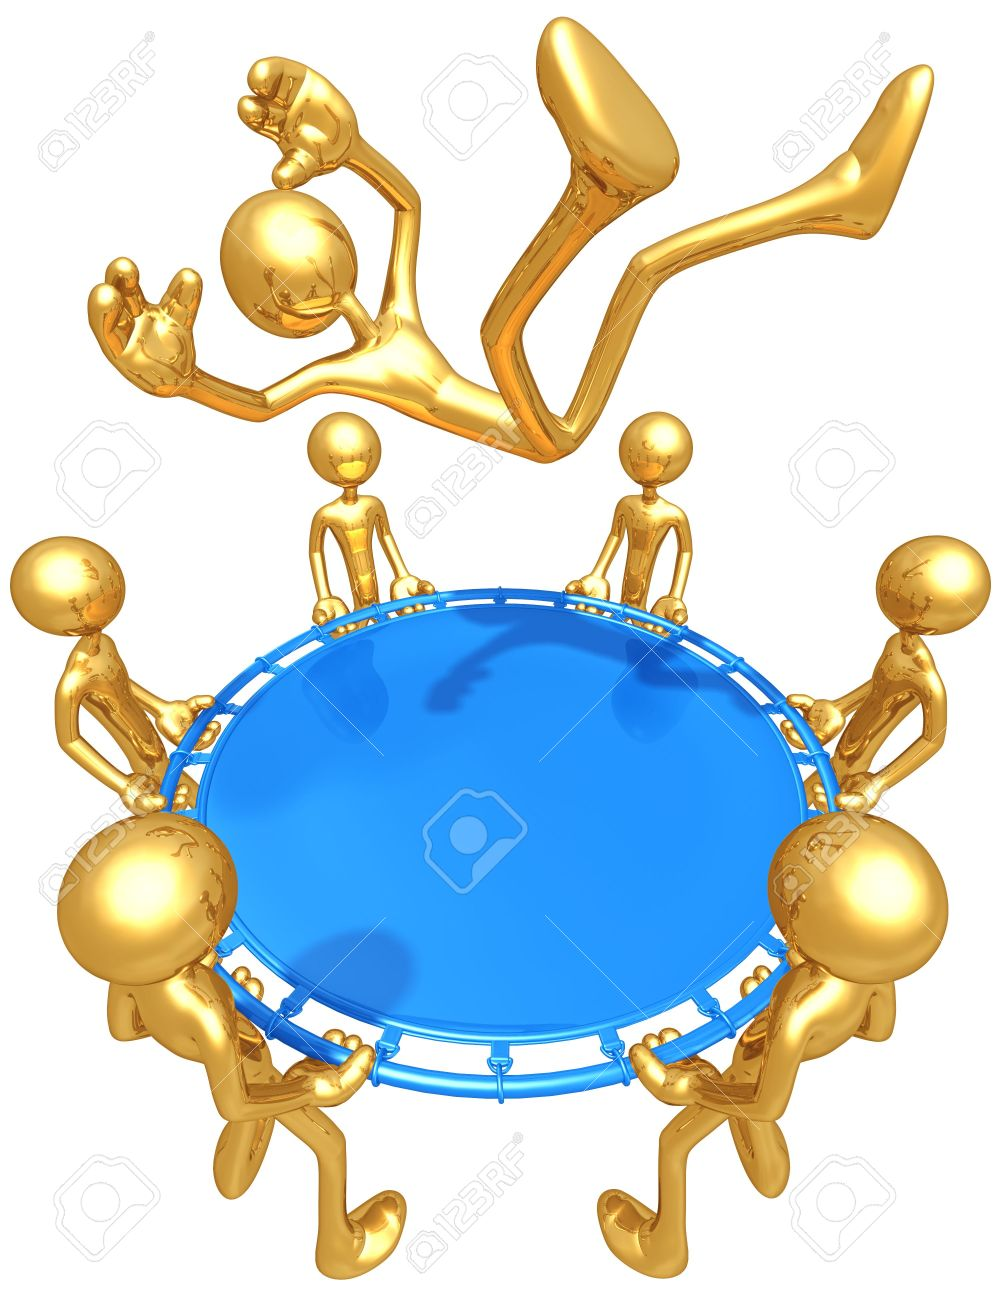 Gold Guys With Safety Net Catching Stock Photo, Picture And.